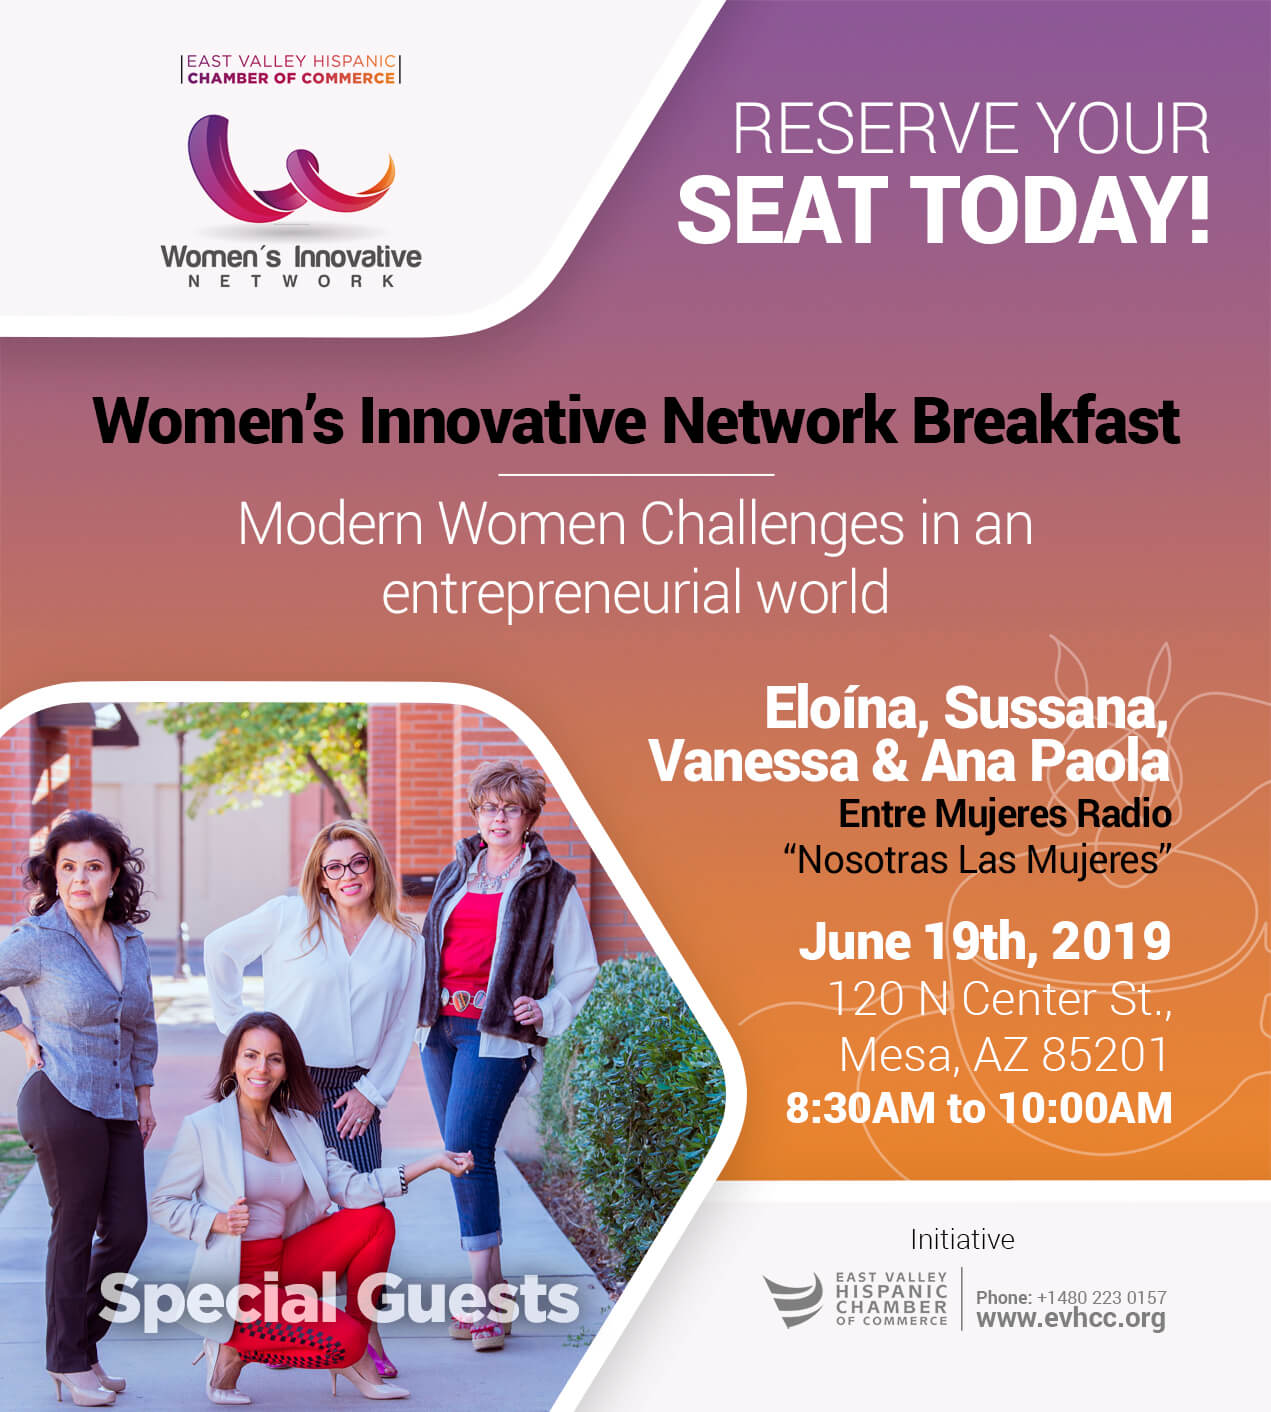 Women's Innovative Network Breakfast by the East Valley Hispanic Chamber of Commerce